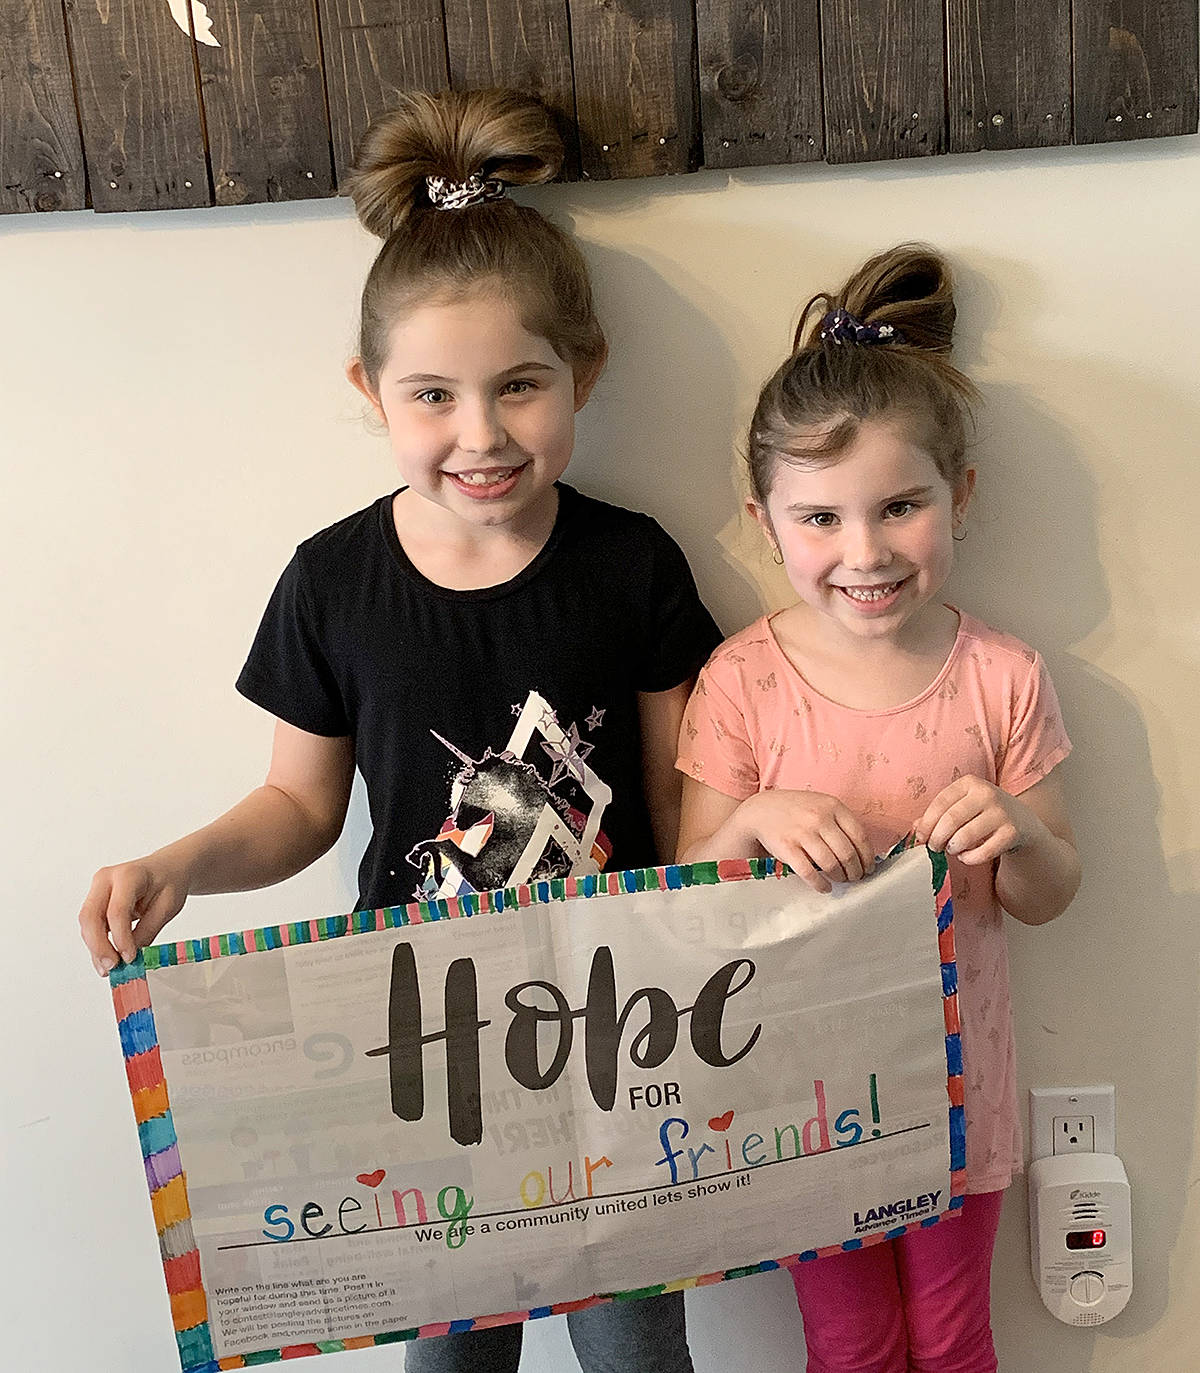 """Seven-year-old Adalynn Susheski, and her five-year-old sister, Natalie, showed off their Hope For poster. They're missing their friends """"big time"""" from James Kennedy Elementary and hoping to see them again soon, explained their mother, Kim. (Kim Susheski/Special to the Langley Advance Times)"""